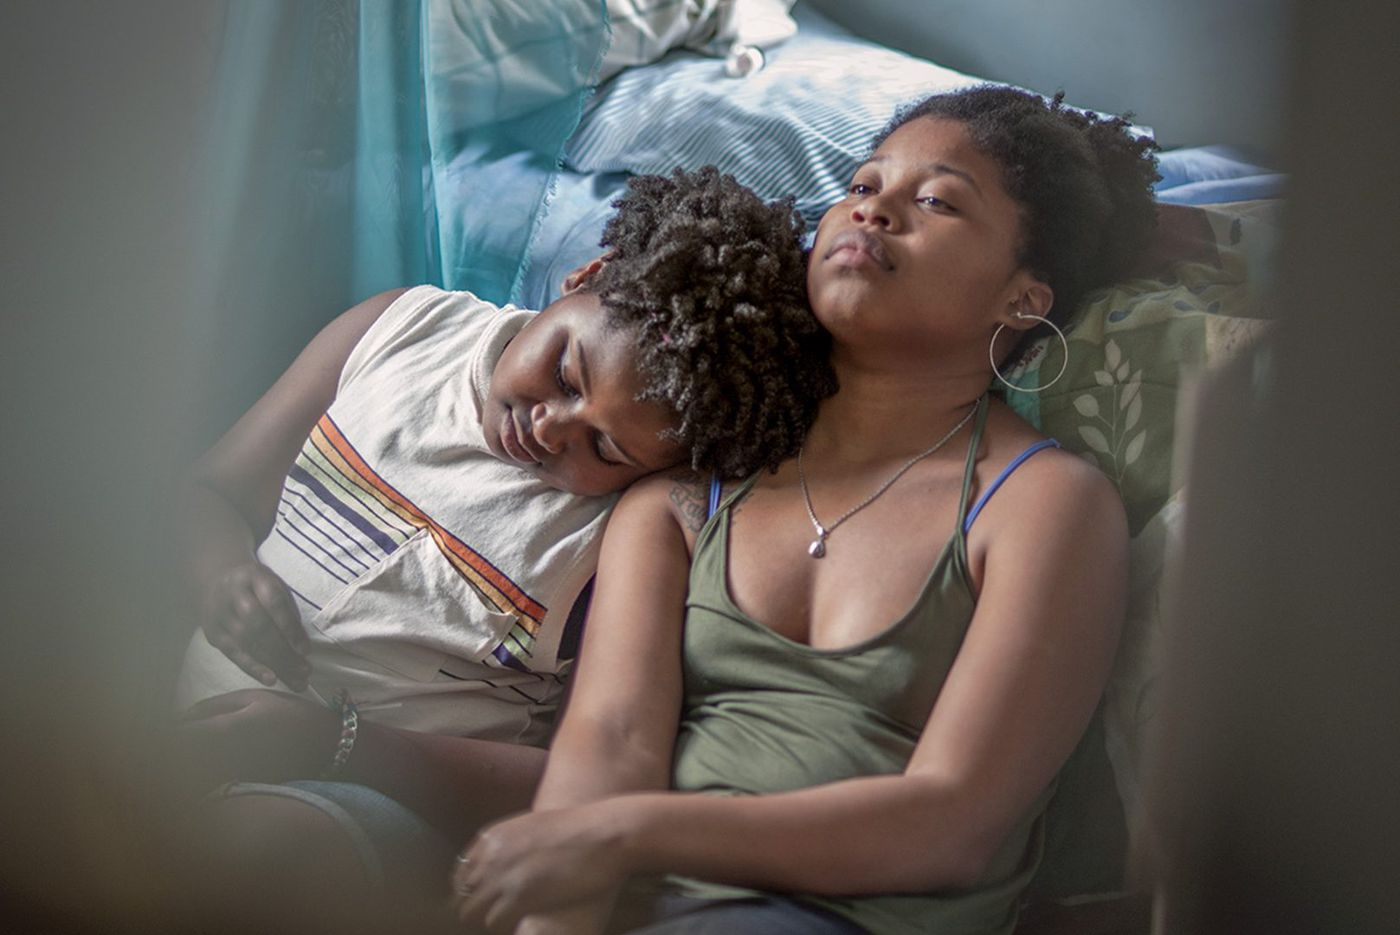 'Night Comes On': Philadelphia is the setting for a moving story of sisterly love